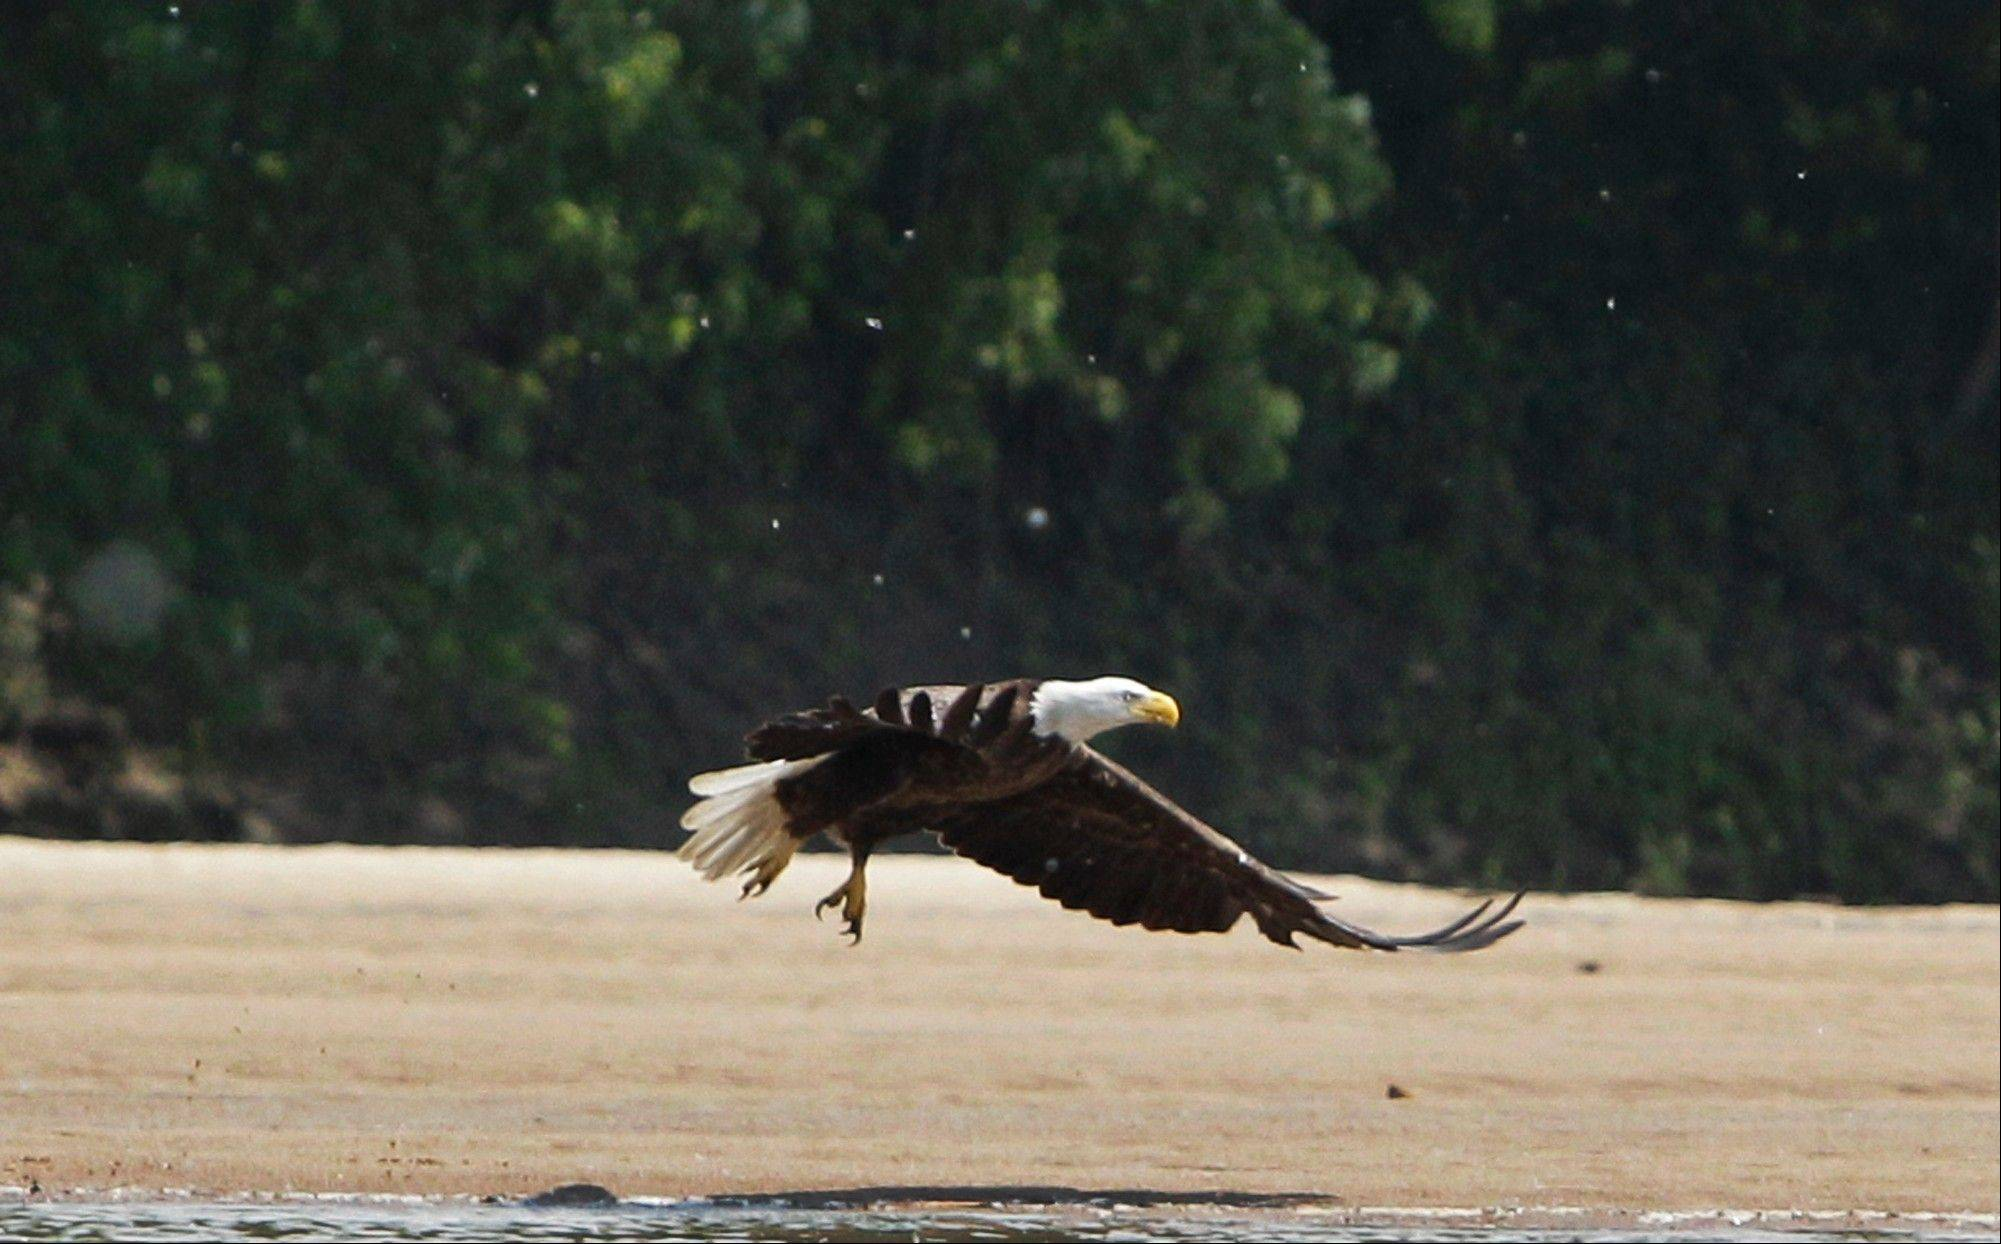 A bald eagle misses on a strike in the shallow waters next to a Kansas River sandbar near Lawrence, Kan. An environmental advocacy group called Friends of the Kaw has been working with communities over the past decade to add boat-launch areas and to take groups out on the river to see the wildlife that calls it home.